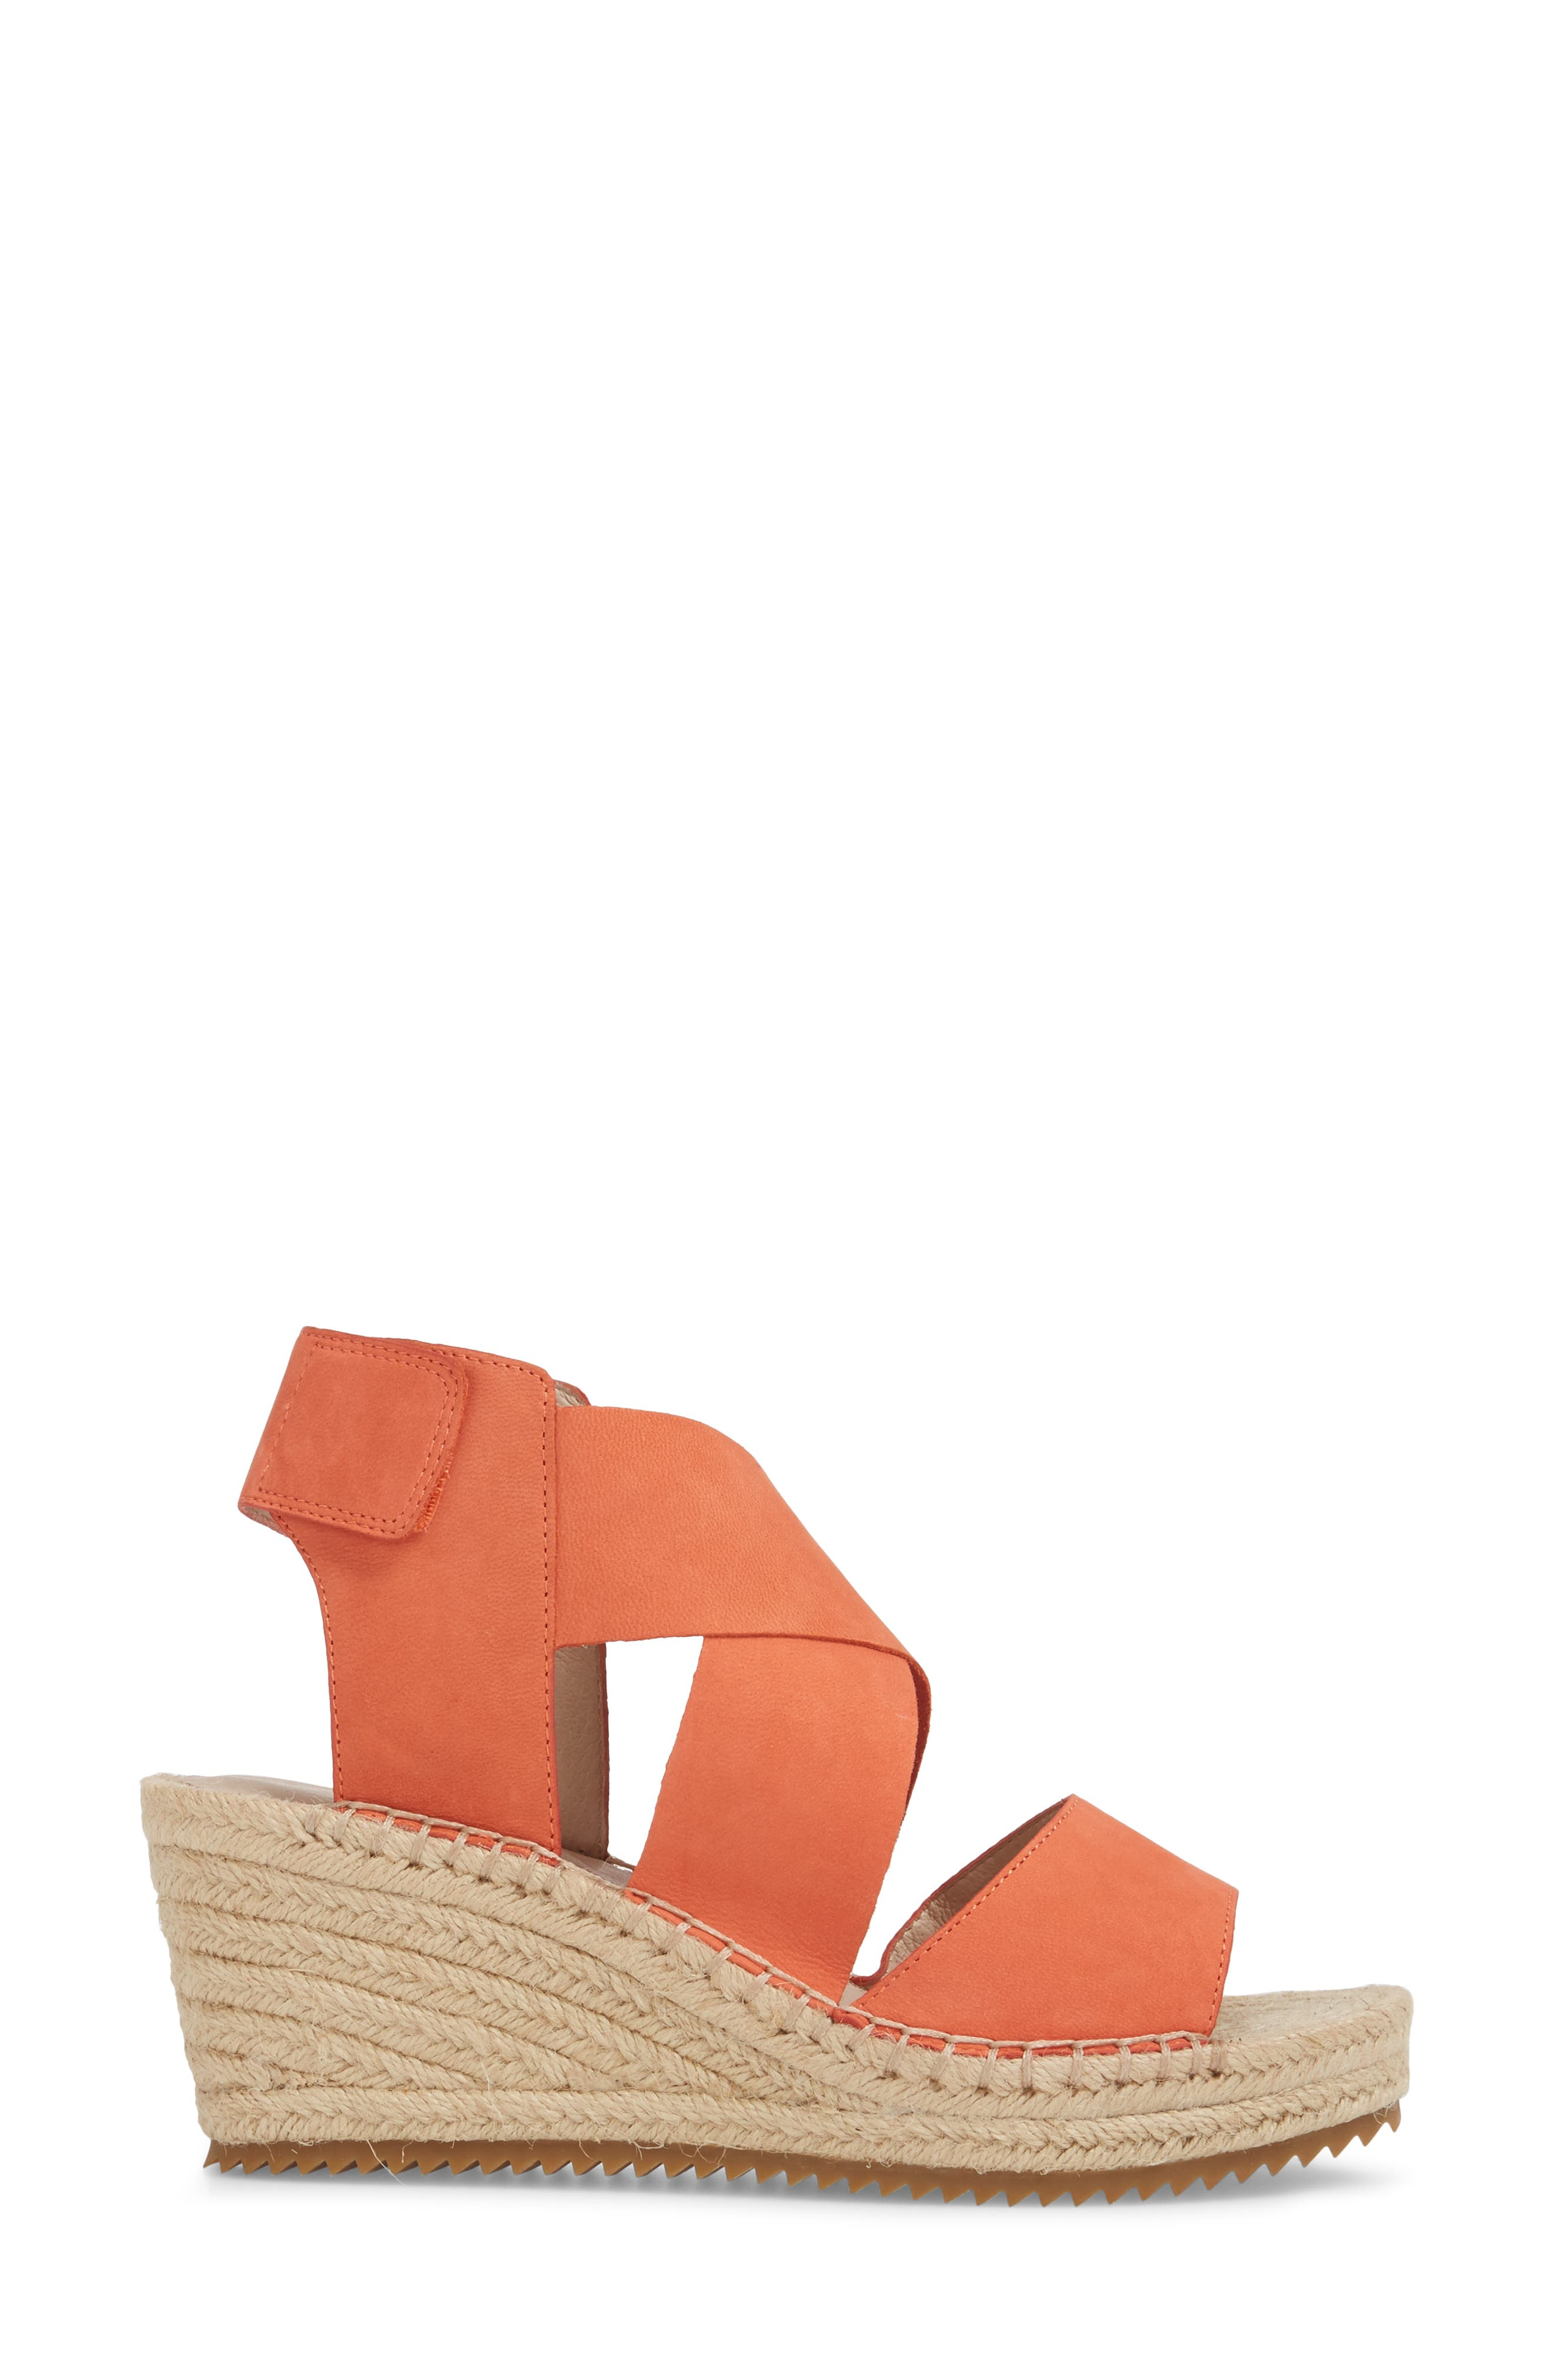 'Willow' Espadrille Wedge Sandal,                             Alternate thumbnail 3, color,                             Persimmon Leather